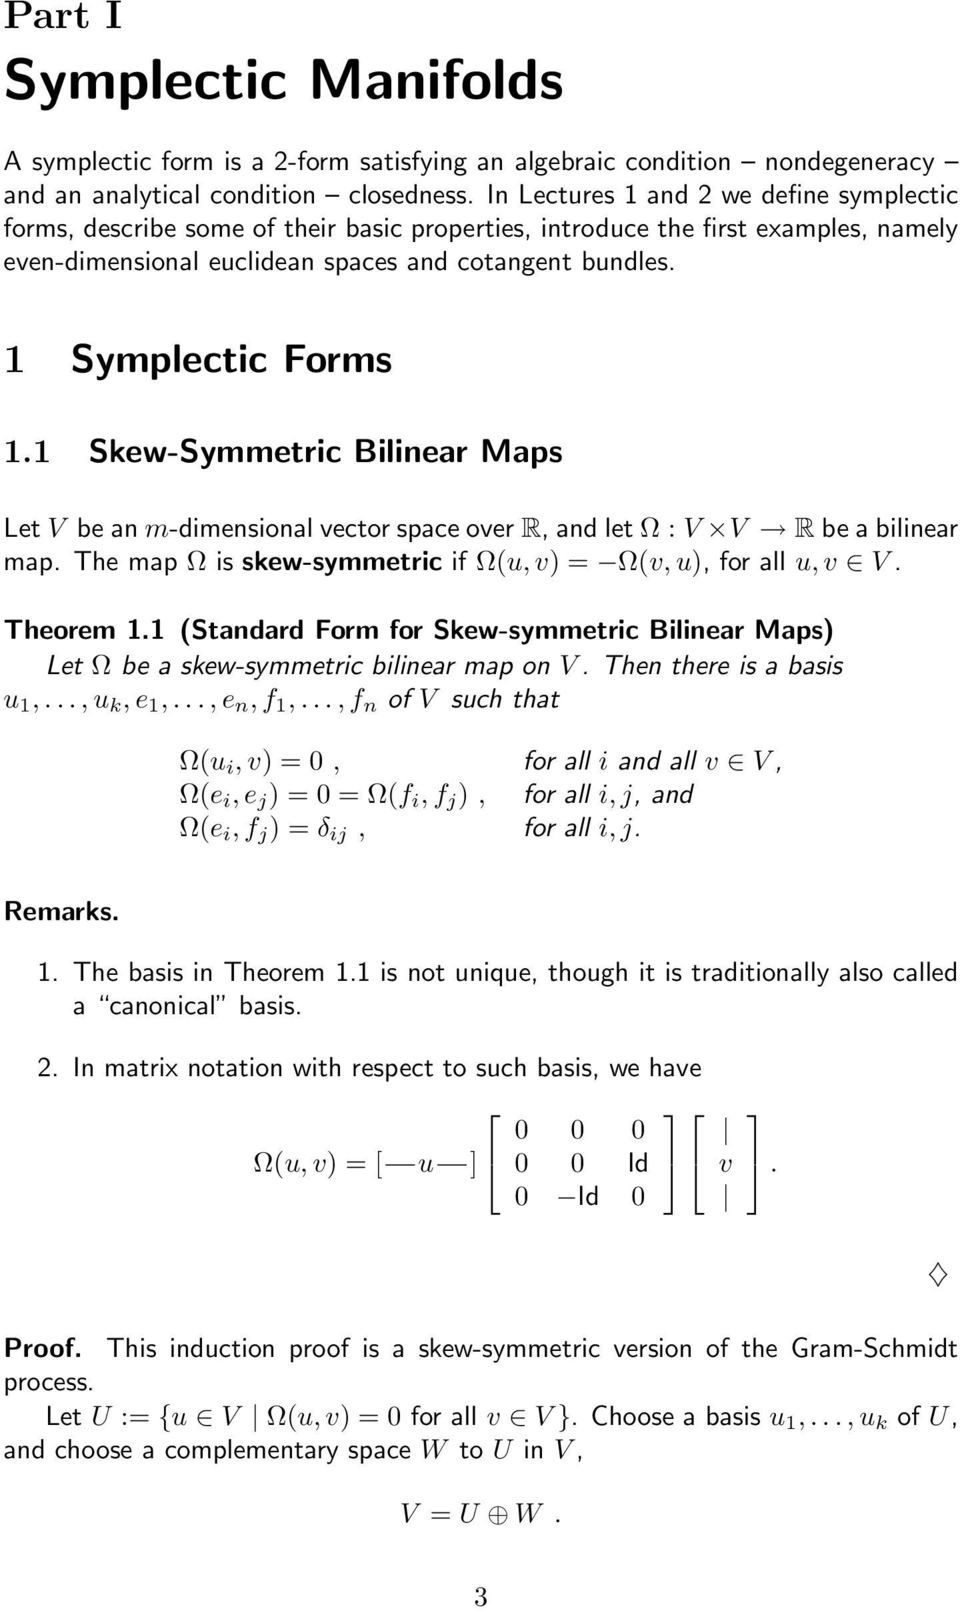 1 Symplectic Forms 1.1 Skew-Symmetric Bilinear Maps Let V be an m-dimensional vector space over R, and let Ω : V V R be a bilinear map.